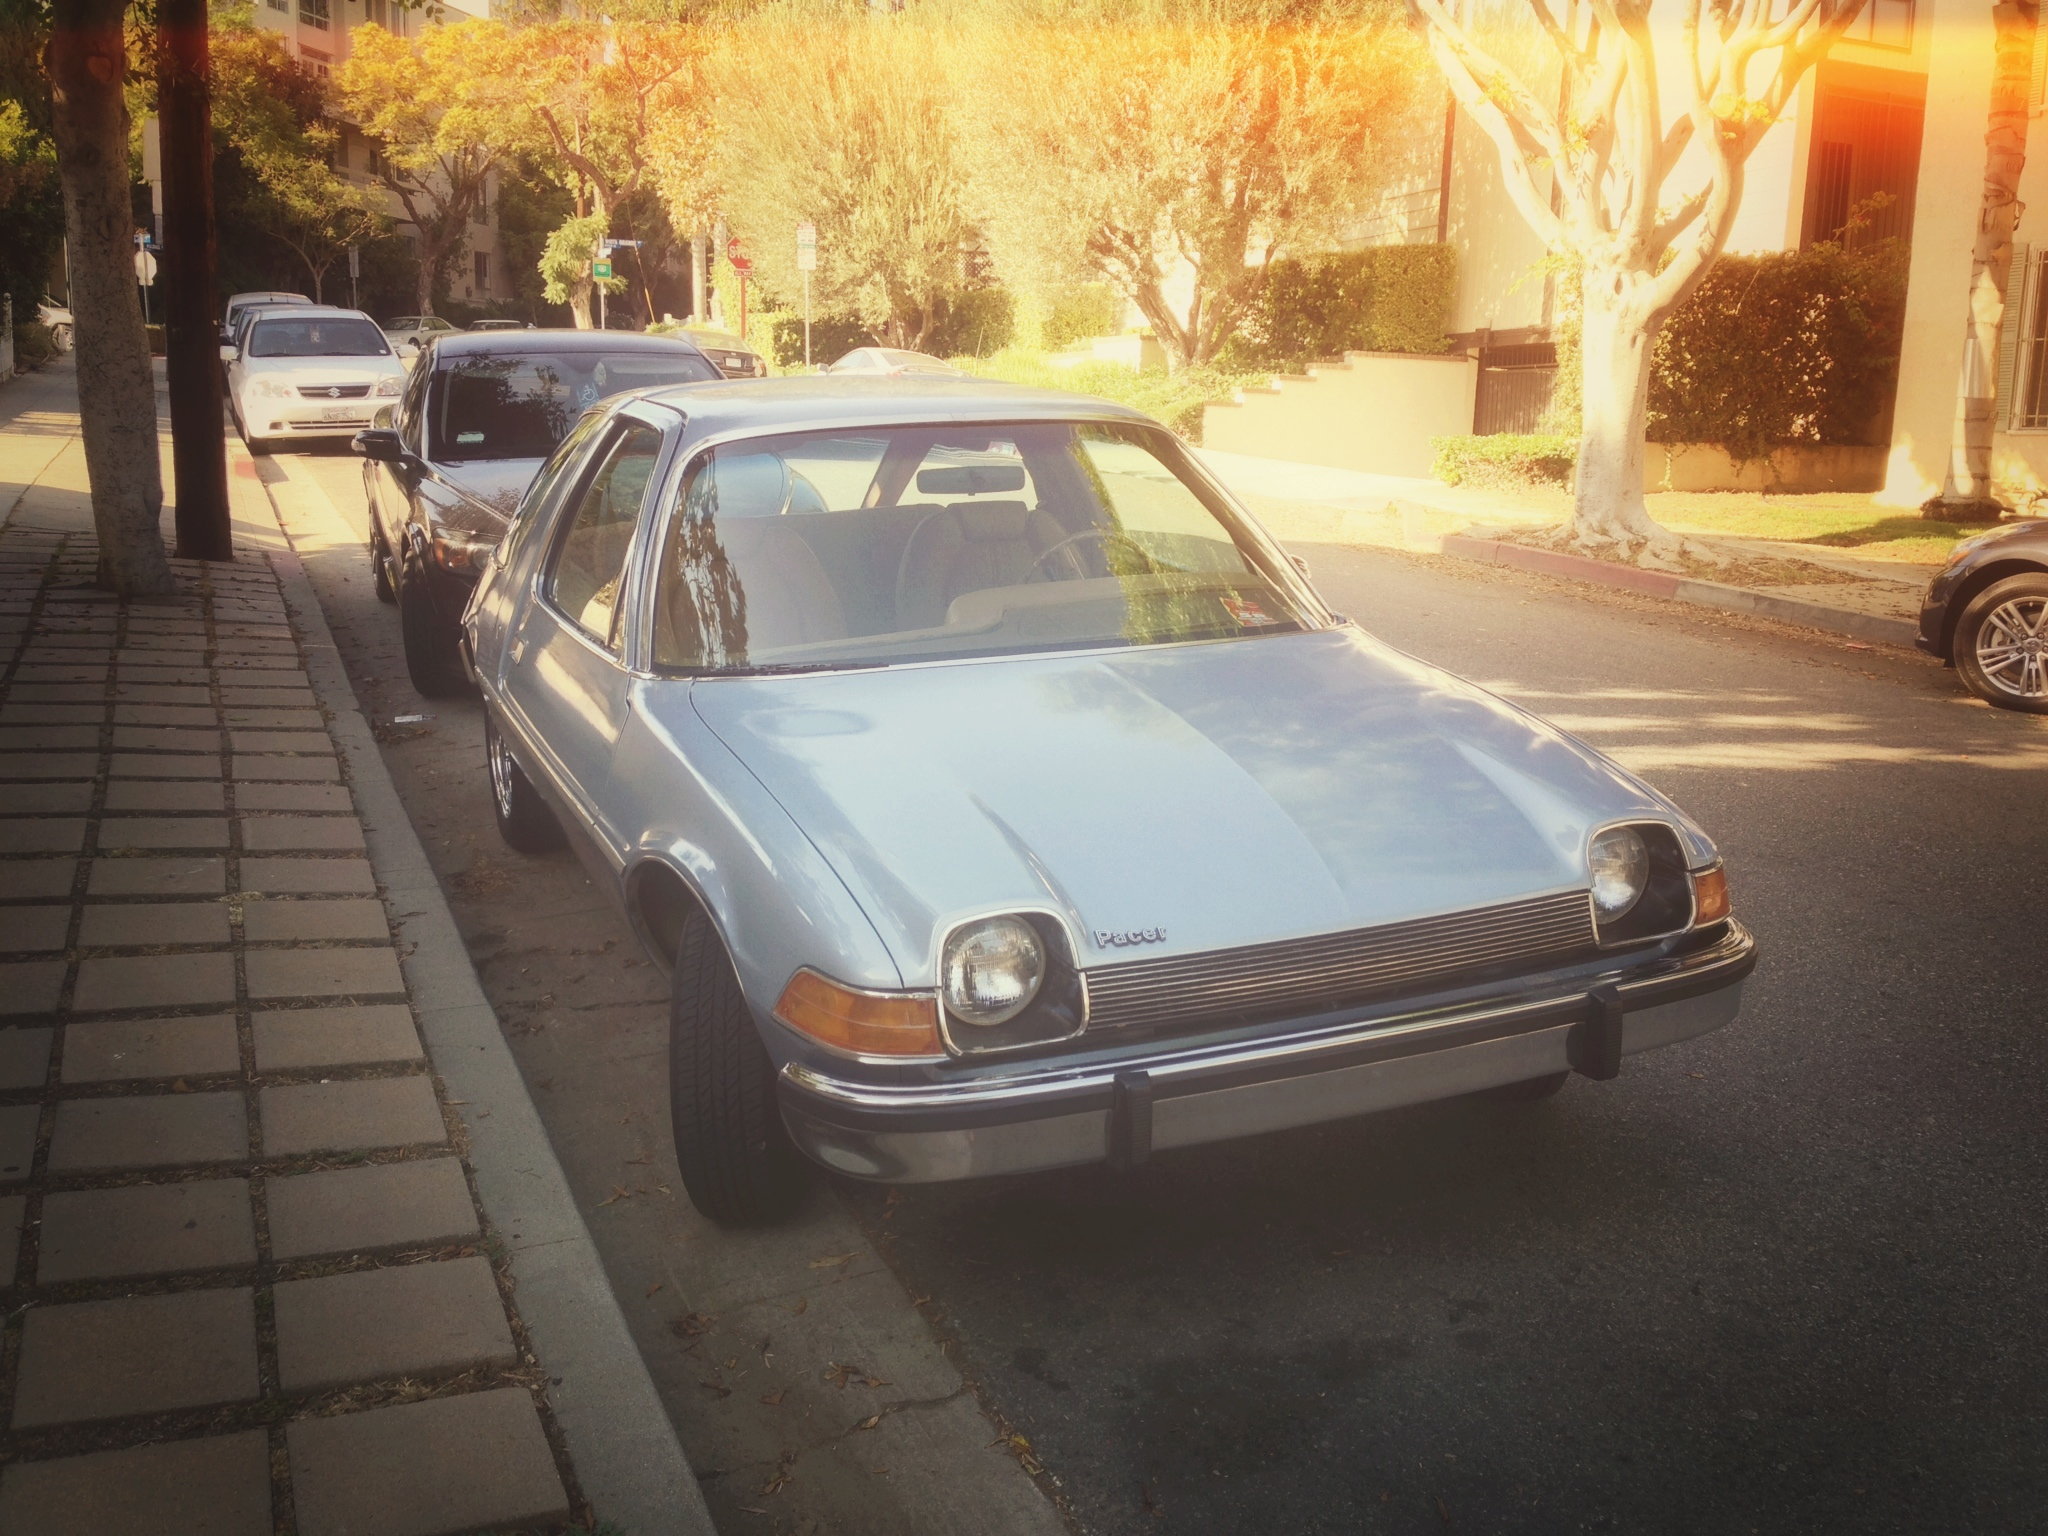 ART OF TRANSIT: You don't see too many AMC Pacers around anymore; I saw this one parked on a local street with an ad in the window offering it for film shoots. Smart! I took the photo with my iPhone and used Snapseed's Retrolux feature to make it look like something shot in the 1970s.